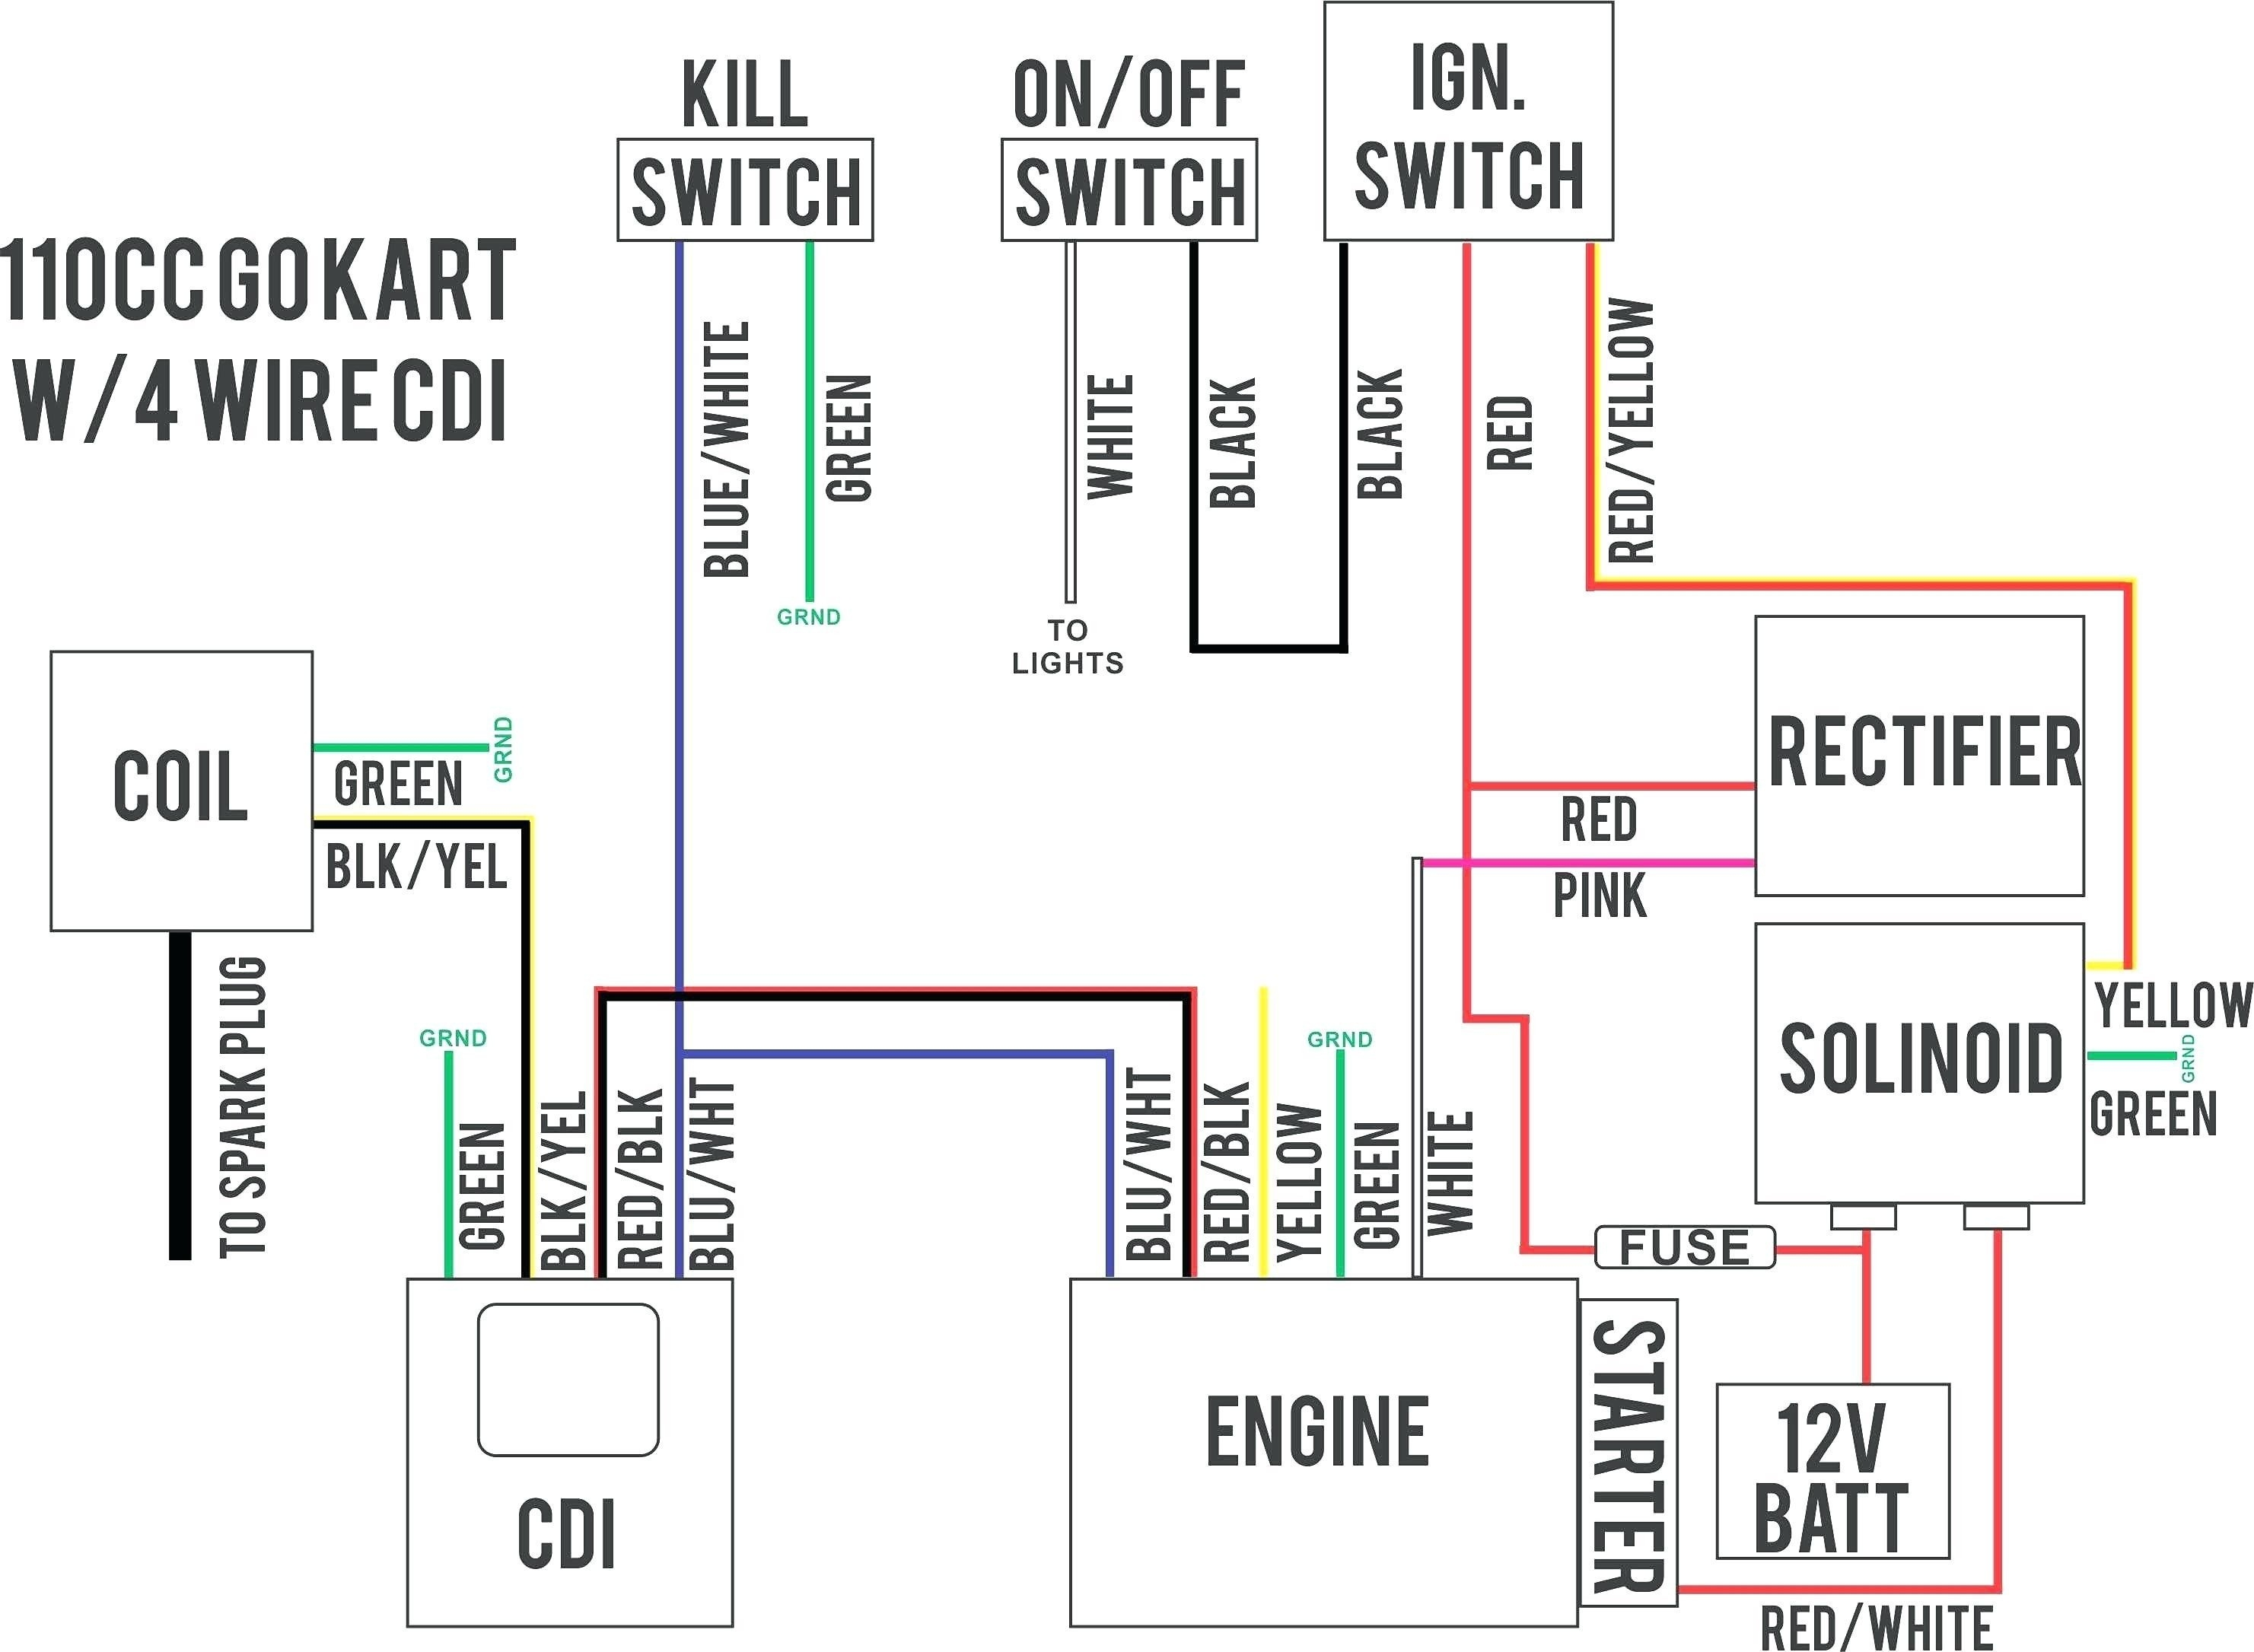 Generac Wiring Schematic | circuit diagram template on generac generator transfer switch wiring, inverter wiring schematic, generac wiring manuals, standby generator wiring schematic, motorhome generator wiring schematic, generac generator parts, generac transfer switch installation, generac transfer switch schematic, generac generator wire brown, generac portable products parts,